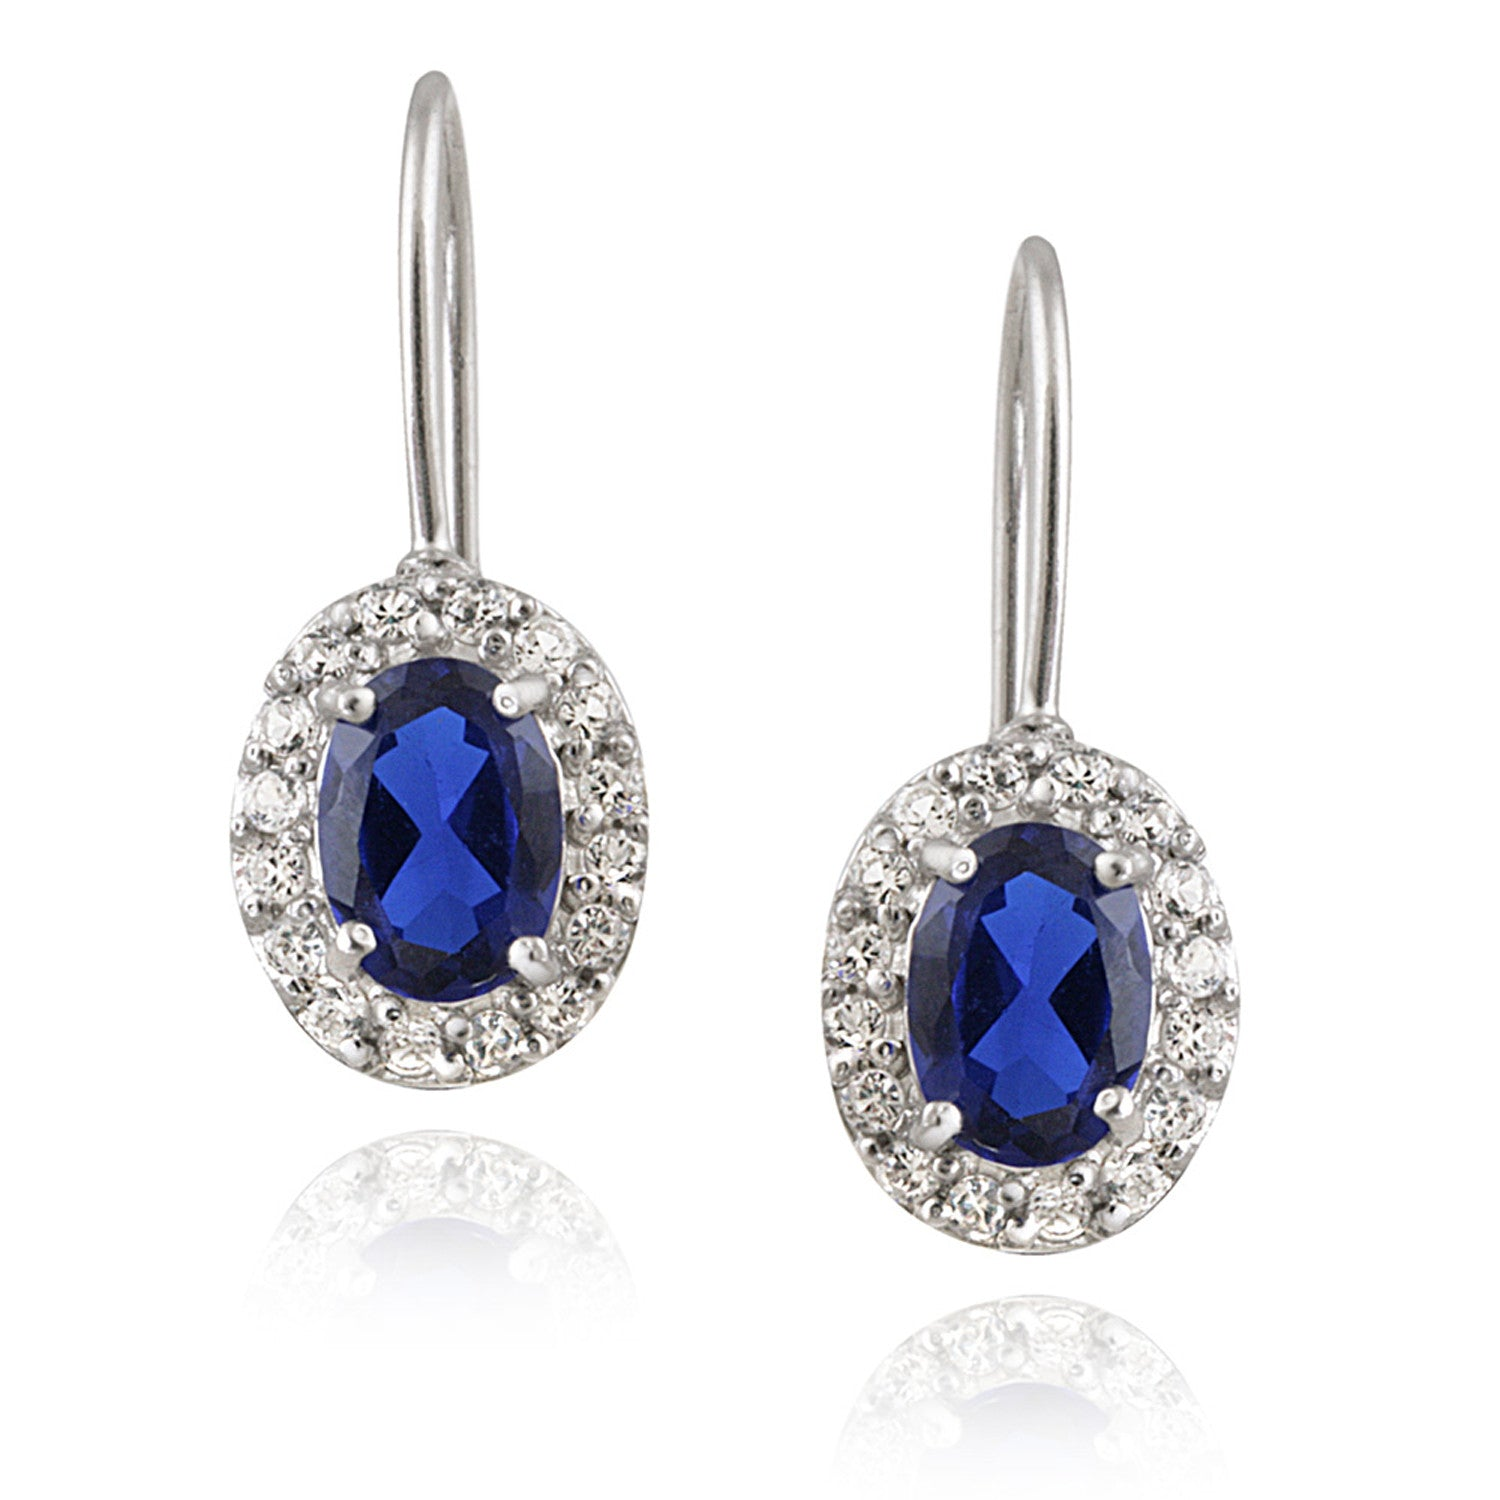 Gemstone Accent Sterling Silver Leverback Dangle Earrings - Silver / Sapphire